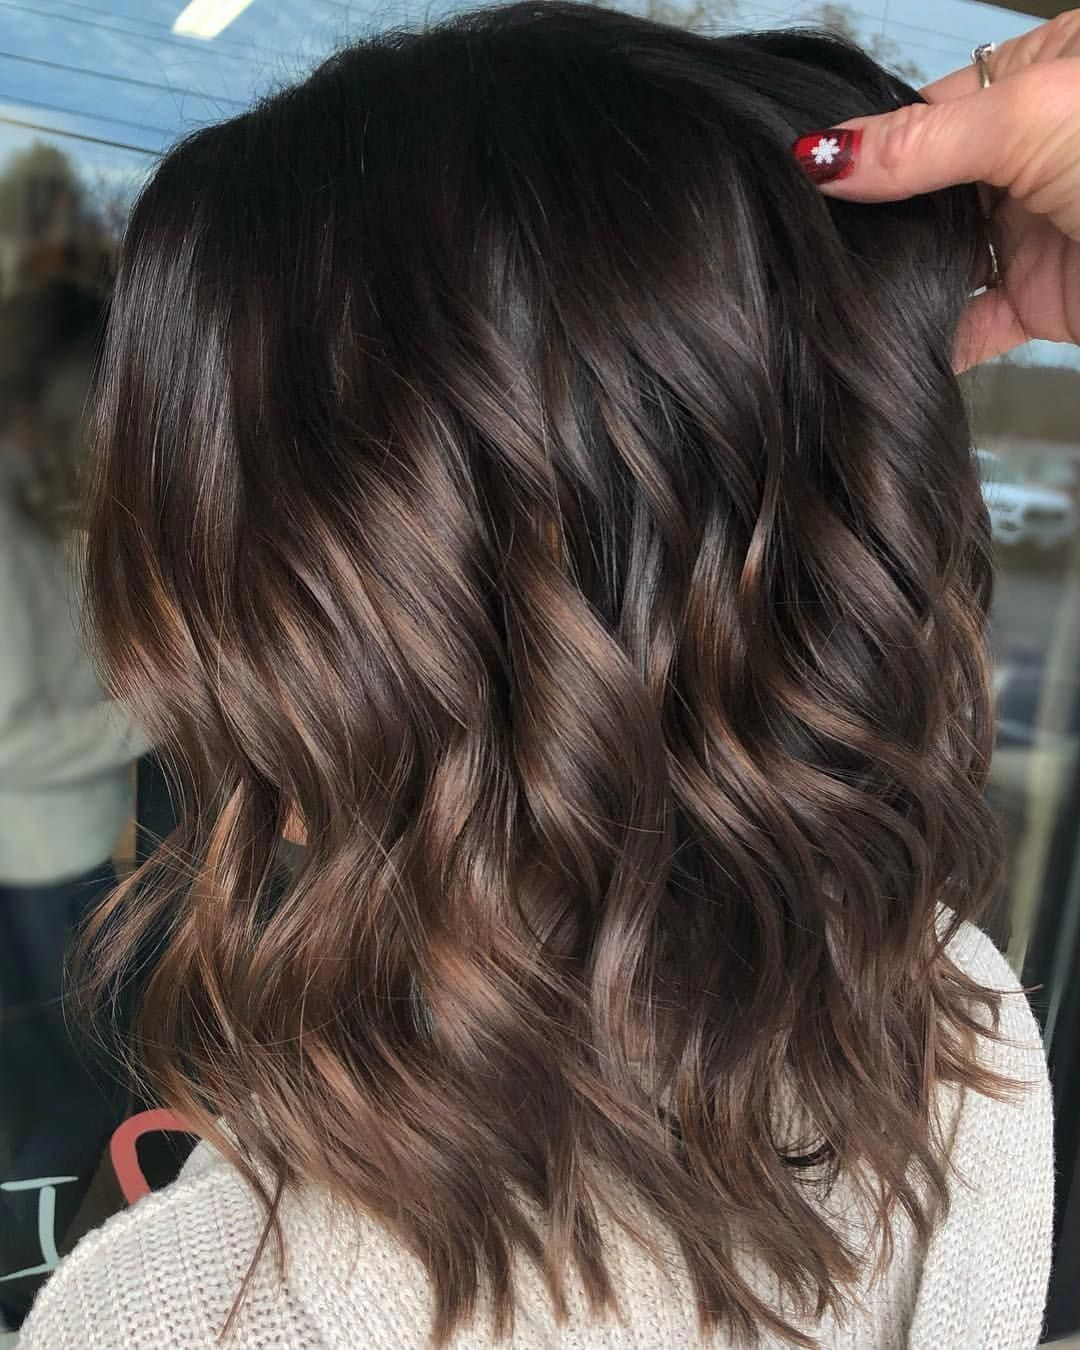 Thin Hair Color Ideas Hair Color Ideas Color Ideas Haircolorideas Brownhairbalayage With Images Brunette Balayage Hair Short Ombre Hair Short Hair Balayage